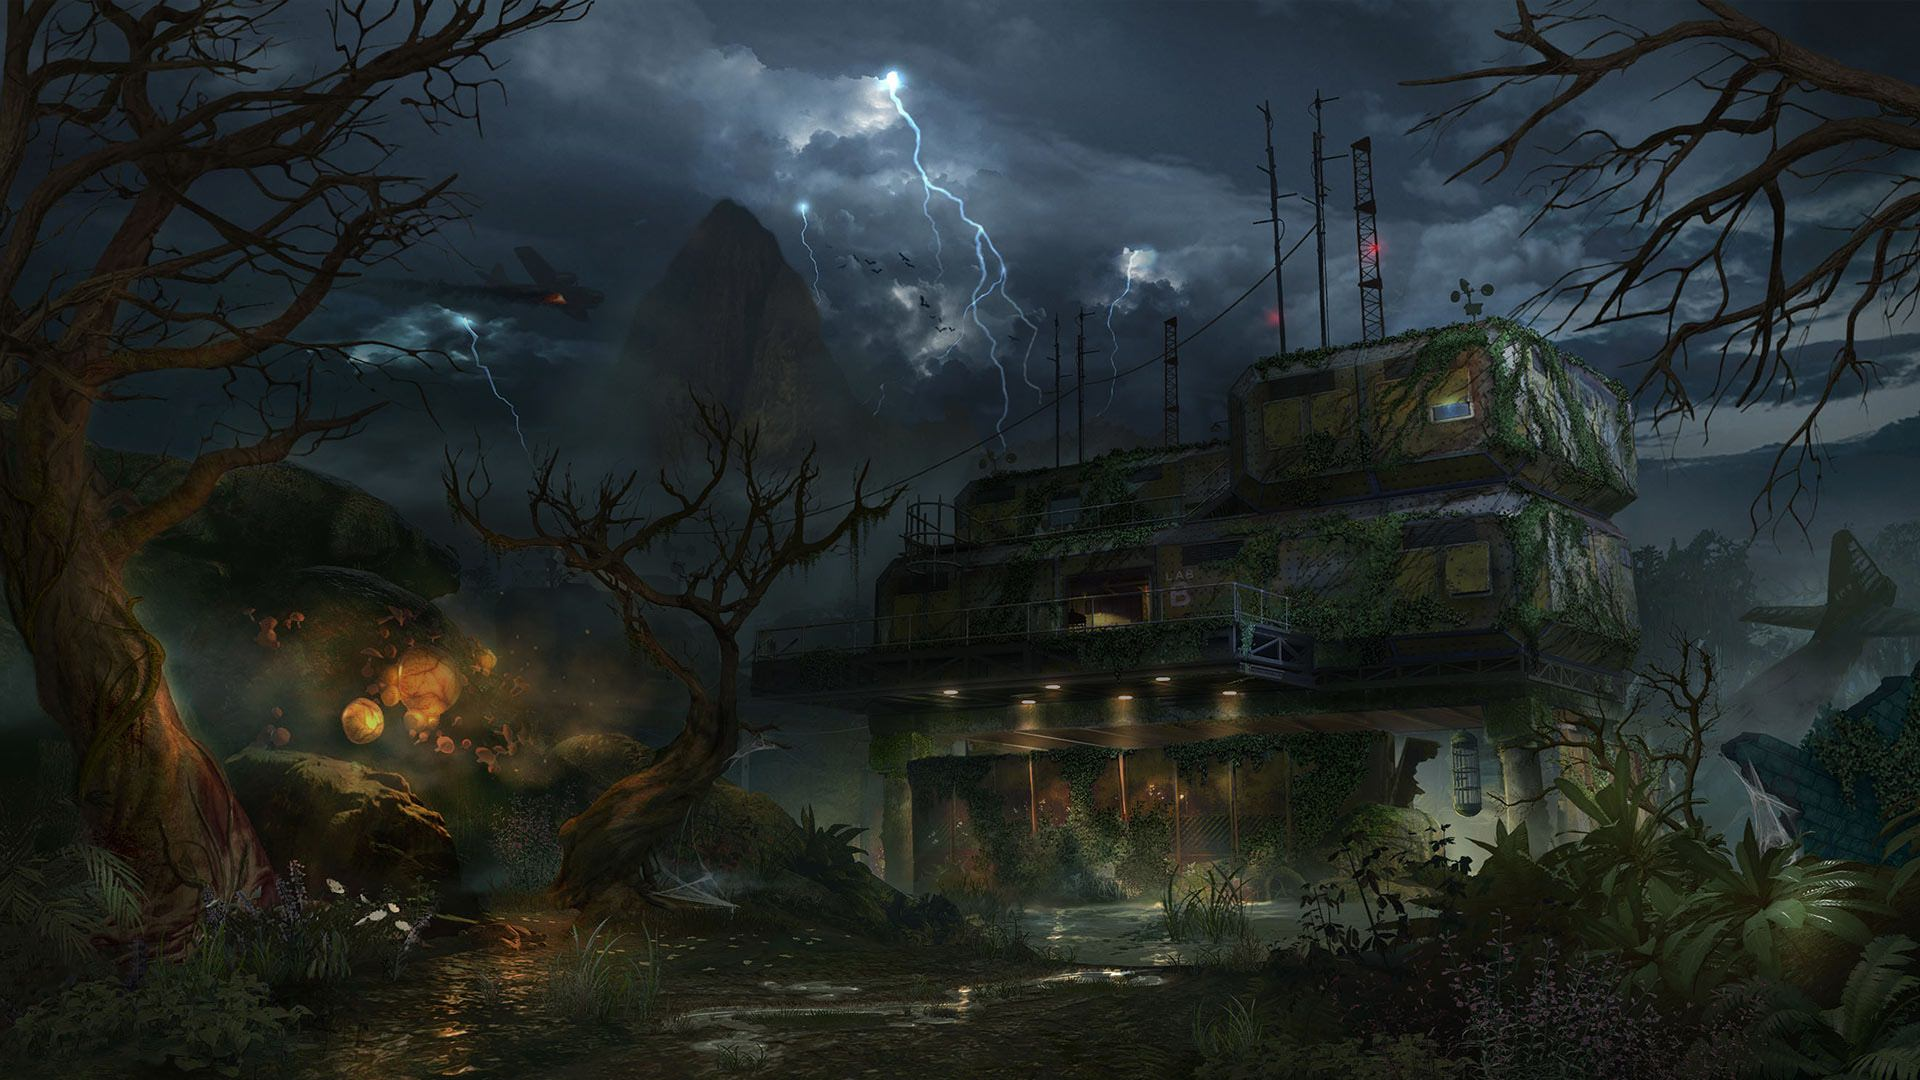 what map pack is call of the dead in with Black Ops 3 Eclipse Dlc2 Announced Available April 19th On Ps4 on Cod Ww2 Hardcore Kill Confirmed Still Playable After Winter Siege Event likewise Call Of Duty Black Ops 3 Launch Trailer furthermore Maps further Black Ops 3 Eclipse Dlc2 Announced Available April 19th On Ps4 additionally Ray Gun Mark Ii Patched Early Mistake.